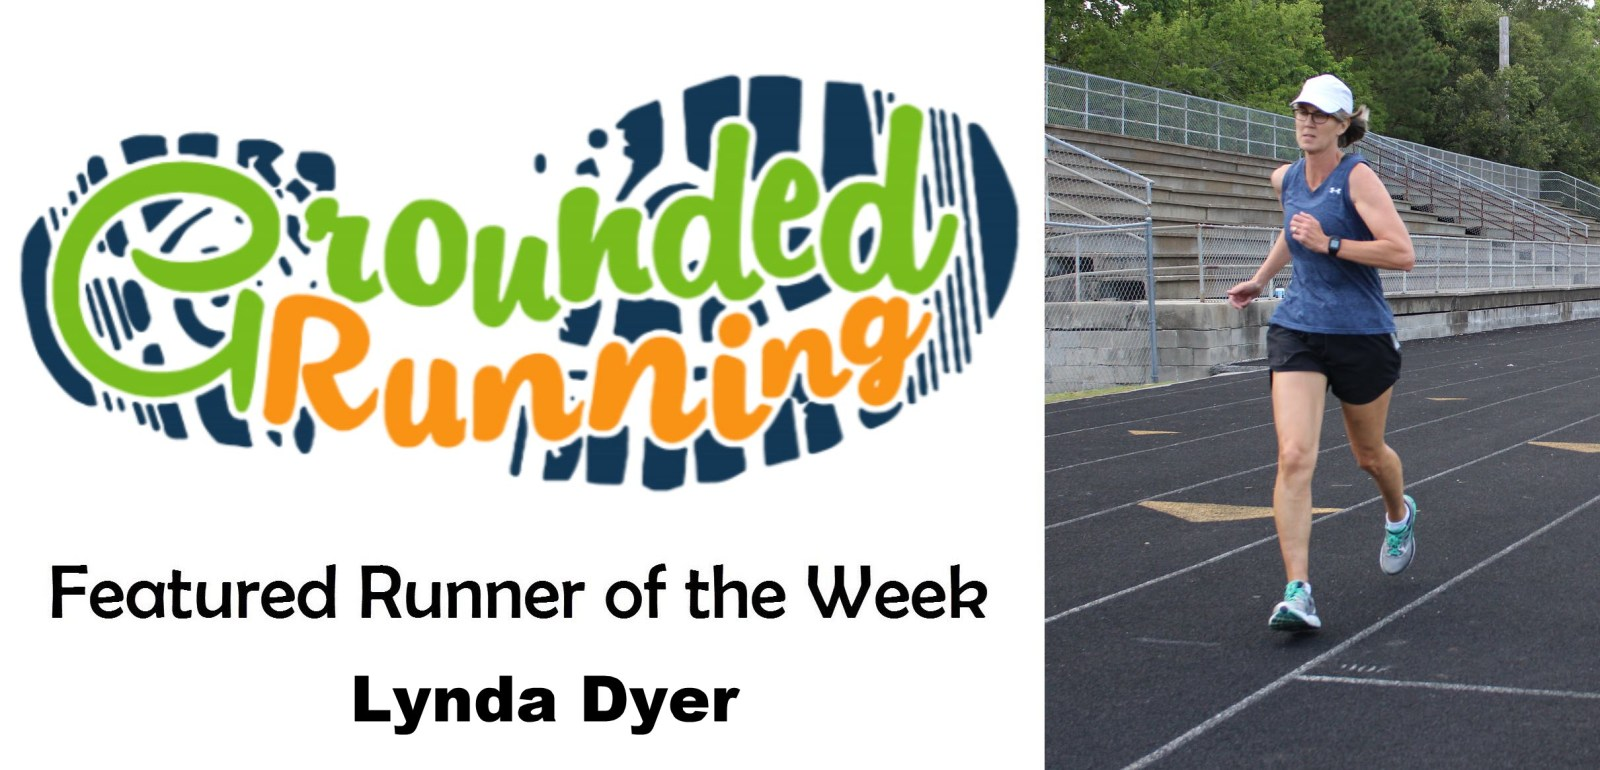 Lynda Dyer - Featured Runner of the Week